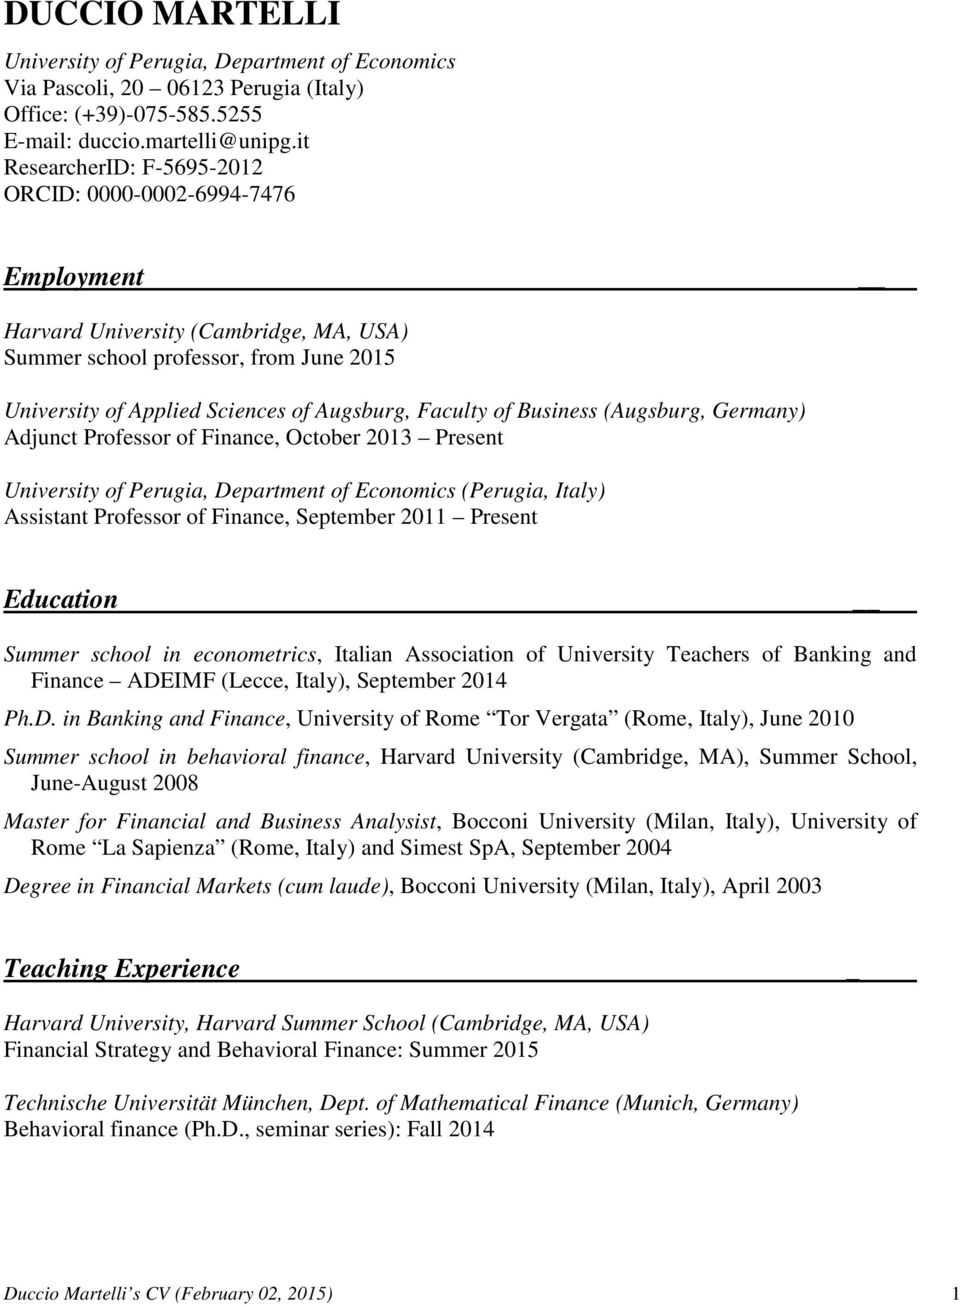 of Business (Augsburg, Germany) Adjunct Professor of Finance, October 2013 Present University of Perugia, Department of Economics (Perugia, Italy) Assistant Professor of Finance, September 2011